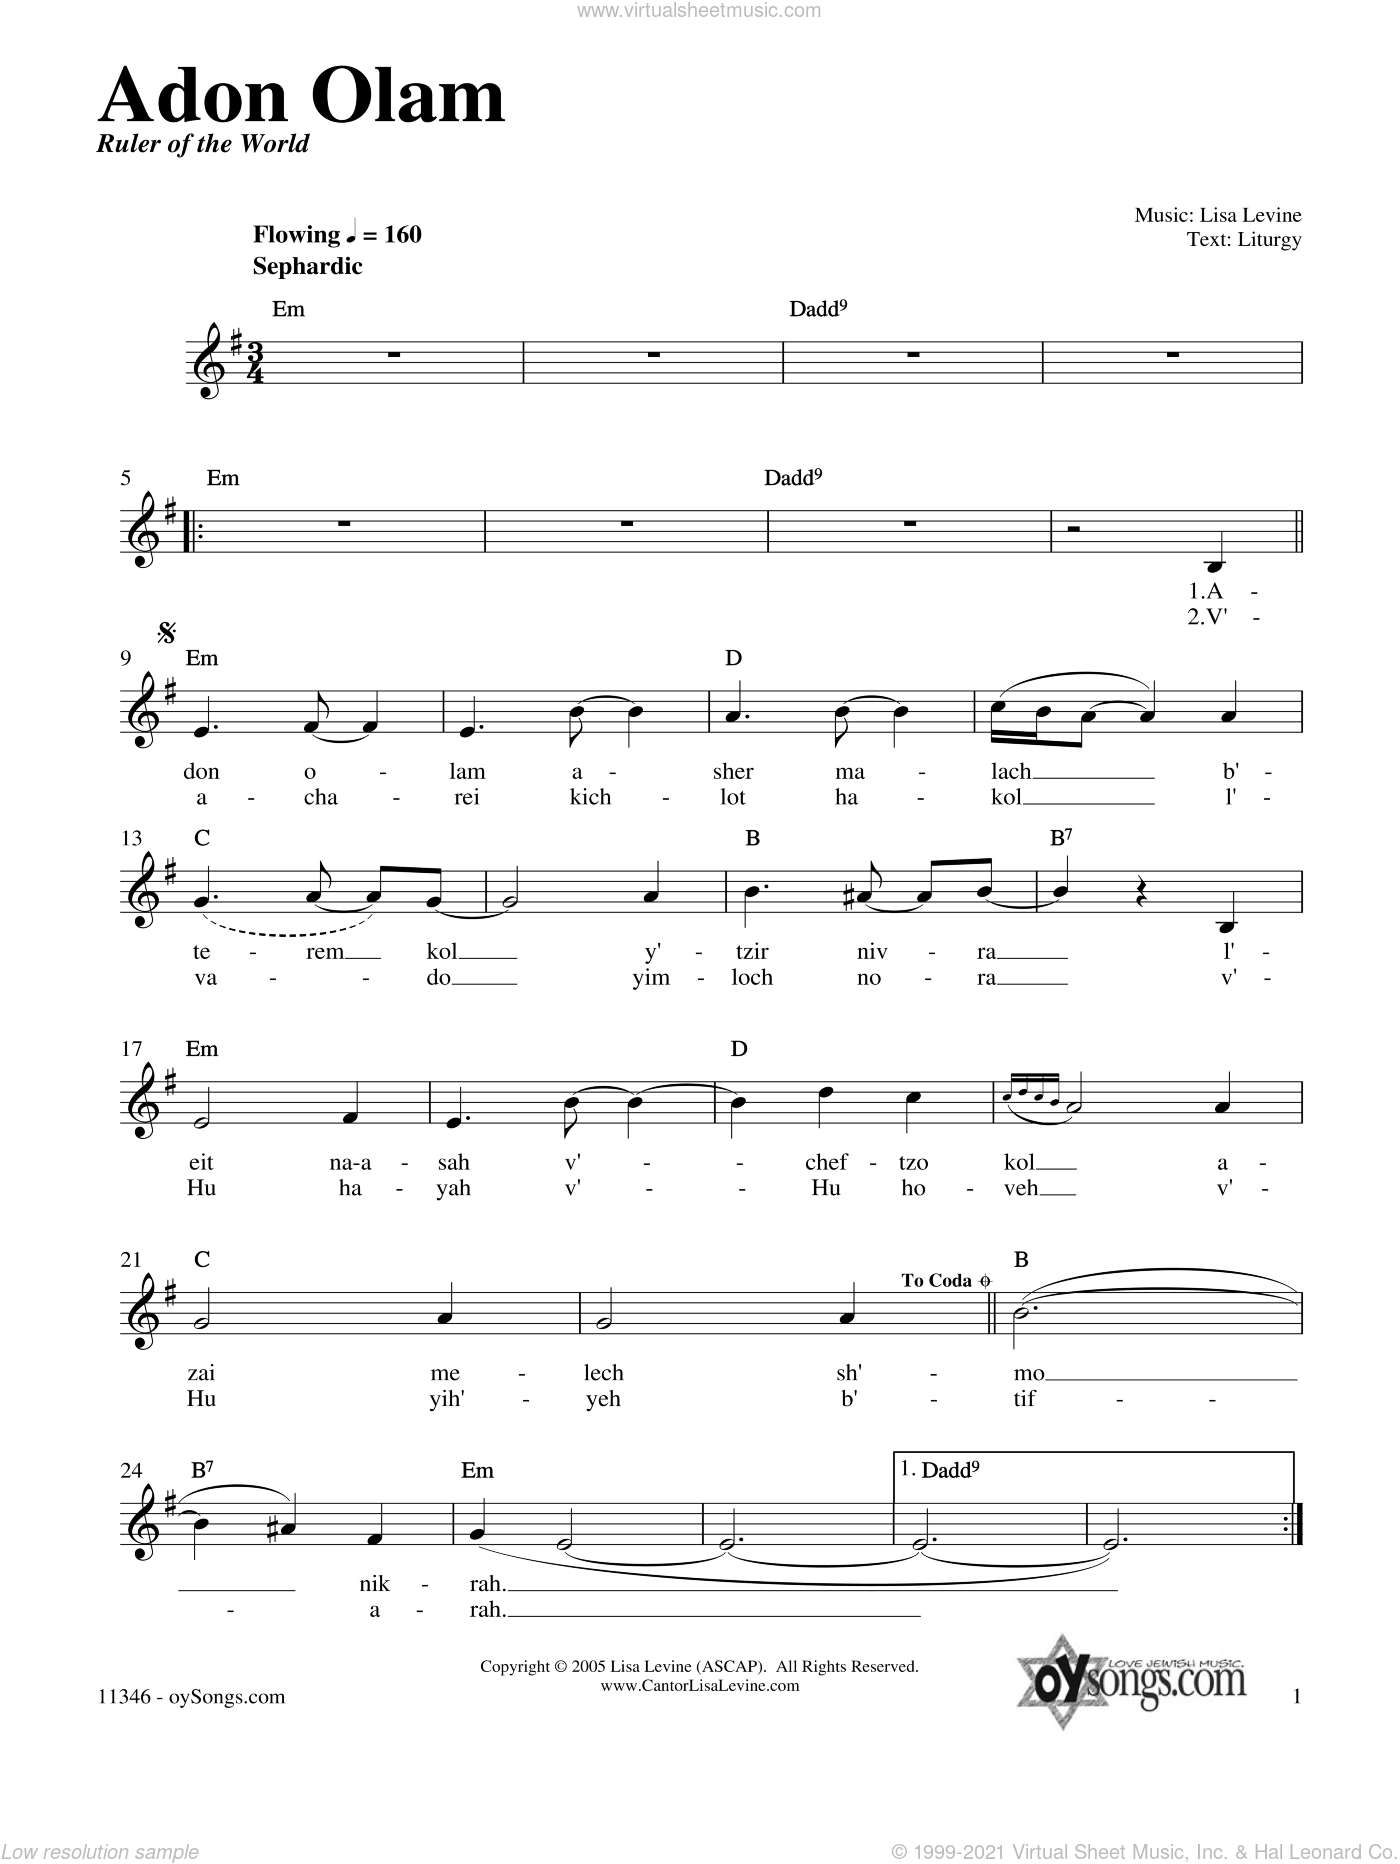 Adon Olam sheet music for voice and other instruments (fake book) by Lisa Levine. Score Image Preview.